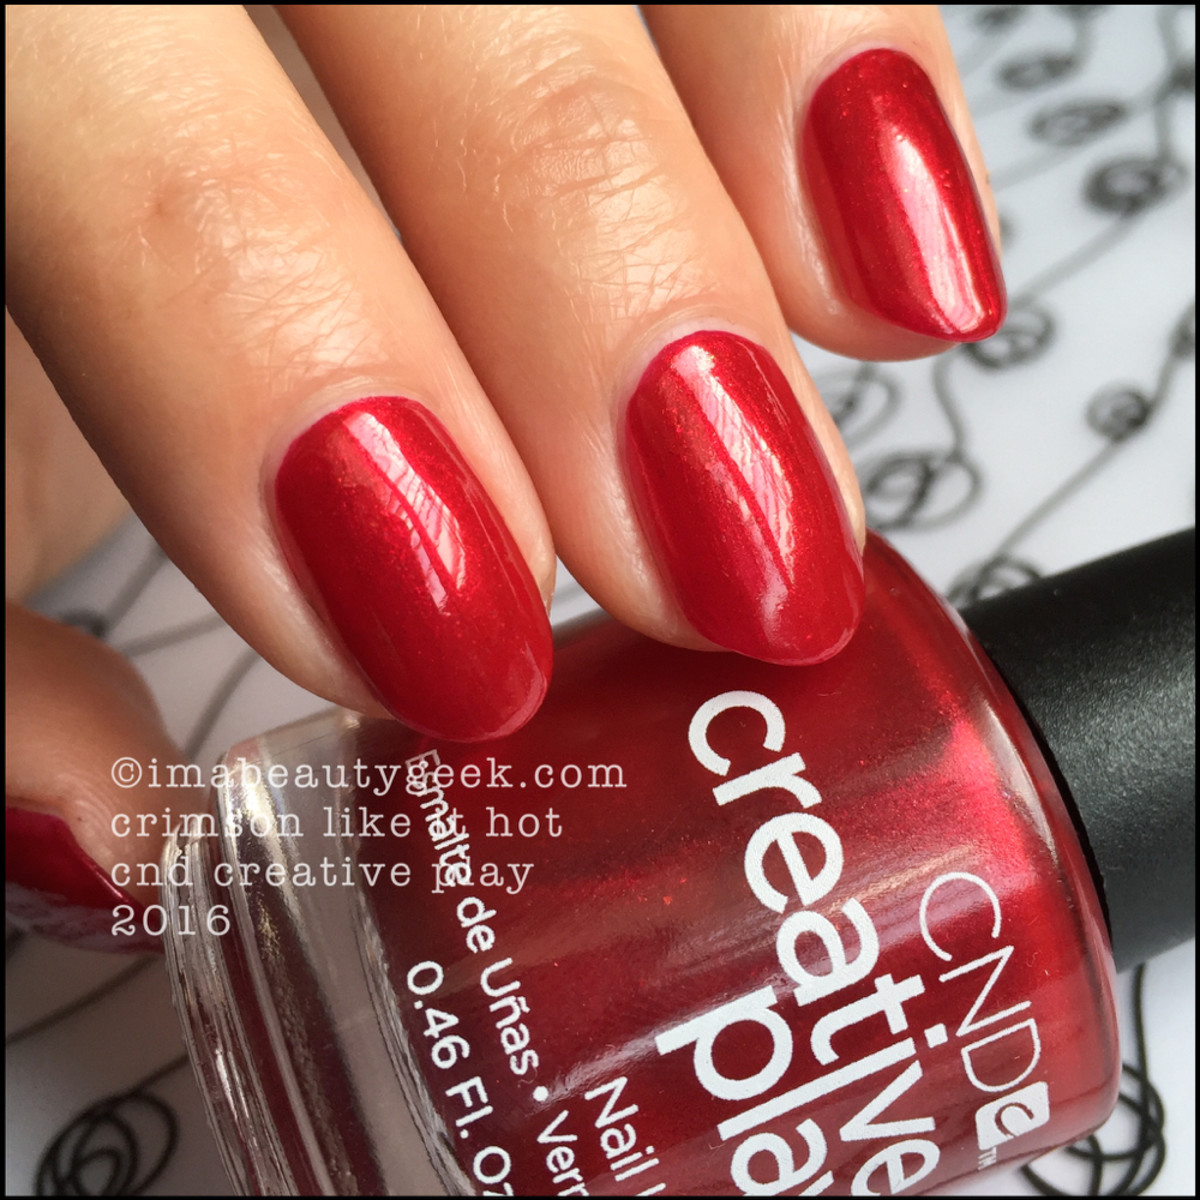 CND Creative Play Crimson Like it Hot_CND Creative Play Nail Polish Swatches 2016